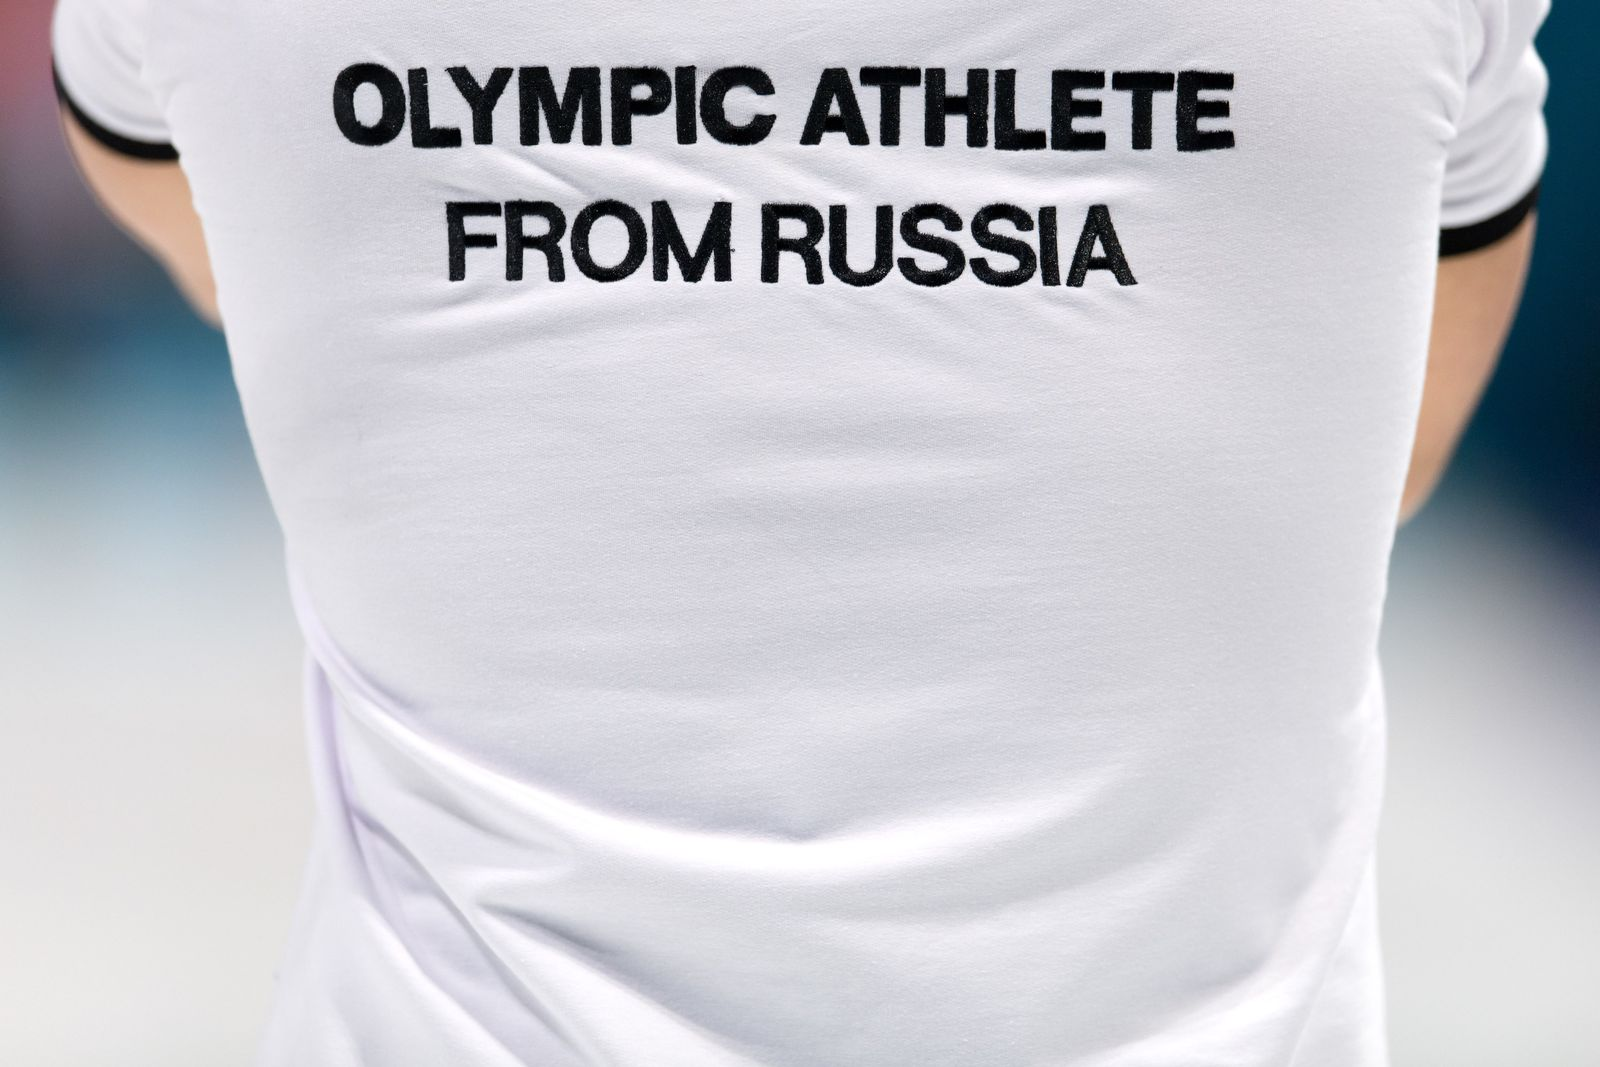 Olympic Athlete from Russia